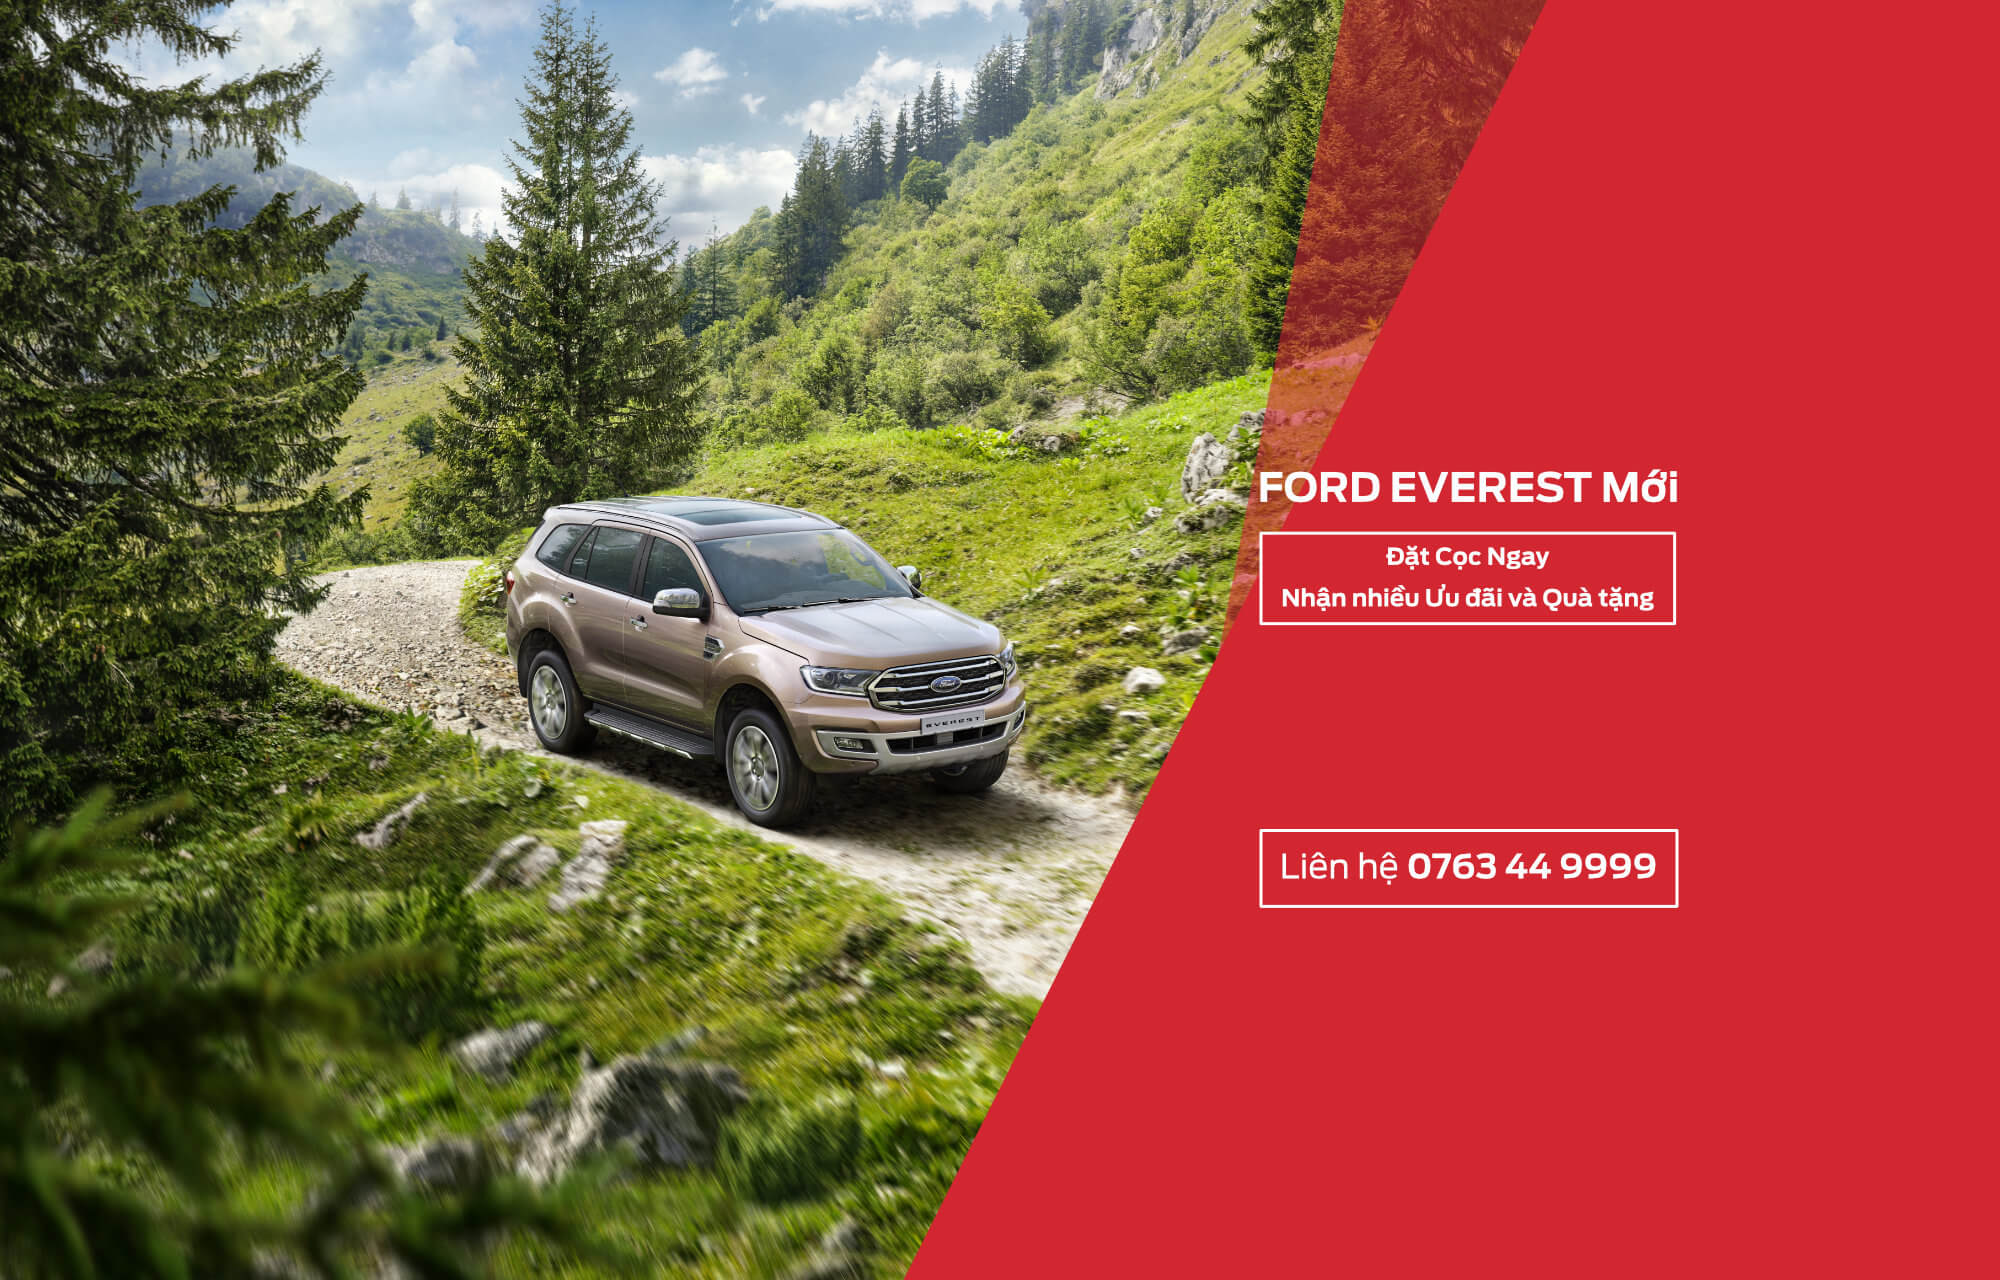 mua Ford Everest 2018 tai Ha Noi Ford